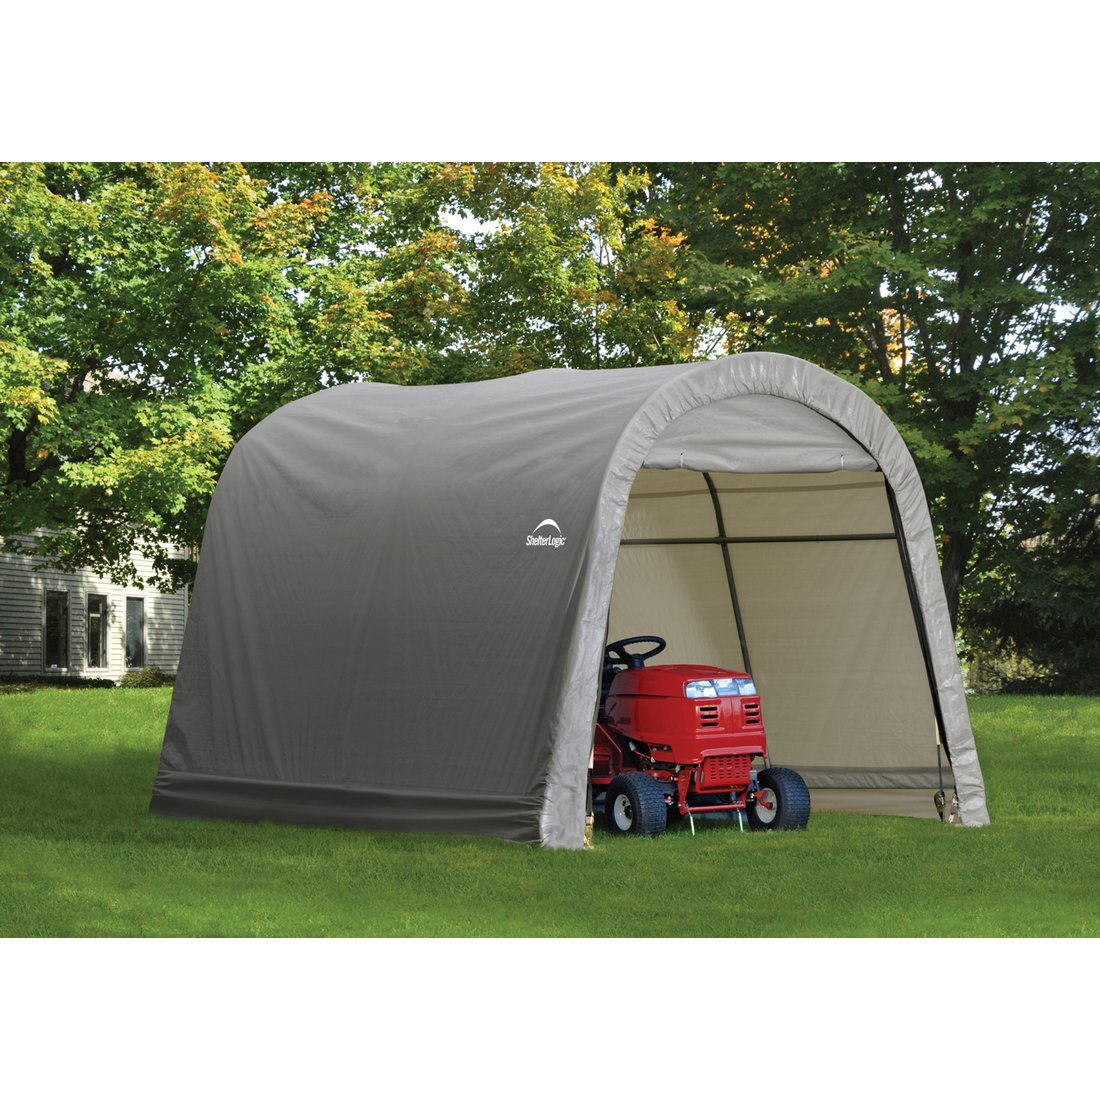 sheds house depot ap portable woven with outdoor shelters kit p enclosure screen x and ft max outdoors en the brands carports shelterlogic home canada structures